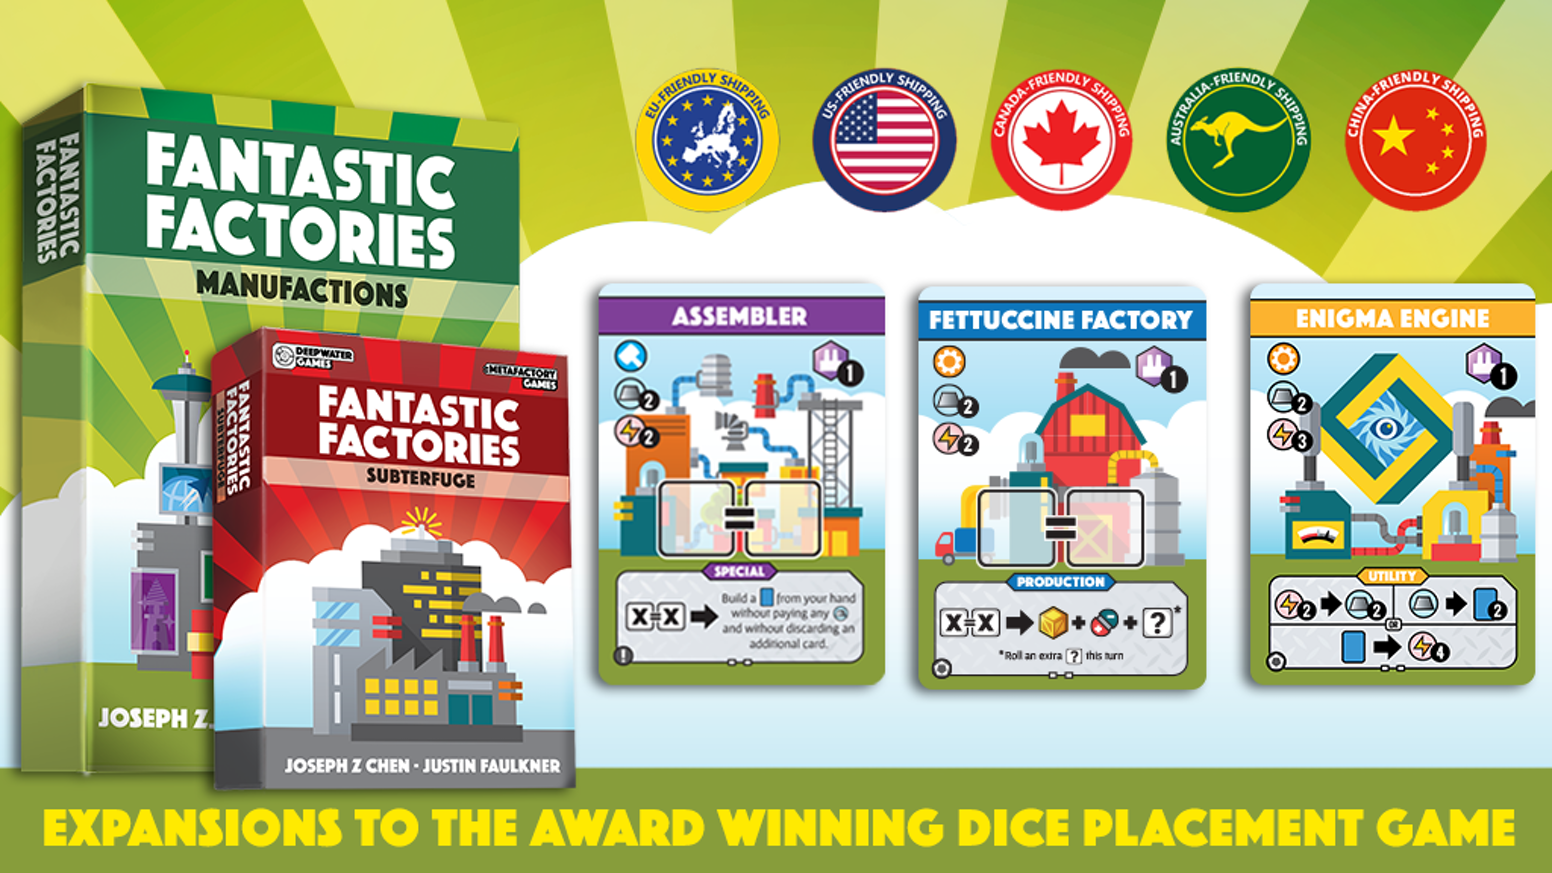 Put on your hard hats! The award winning card game is expanding! Which faction will you align with to establish market dominance?